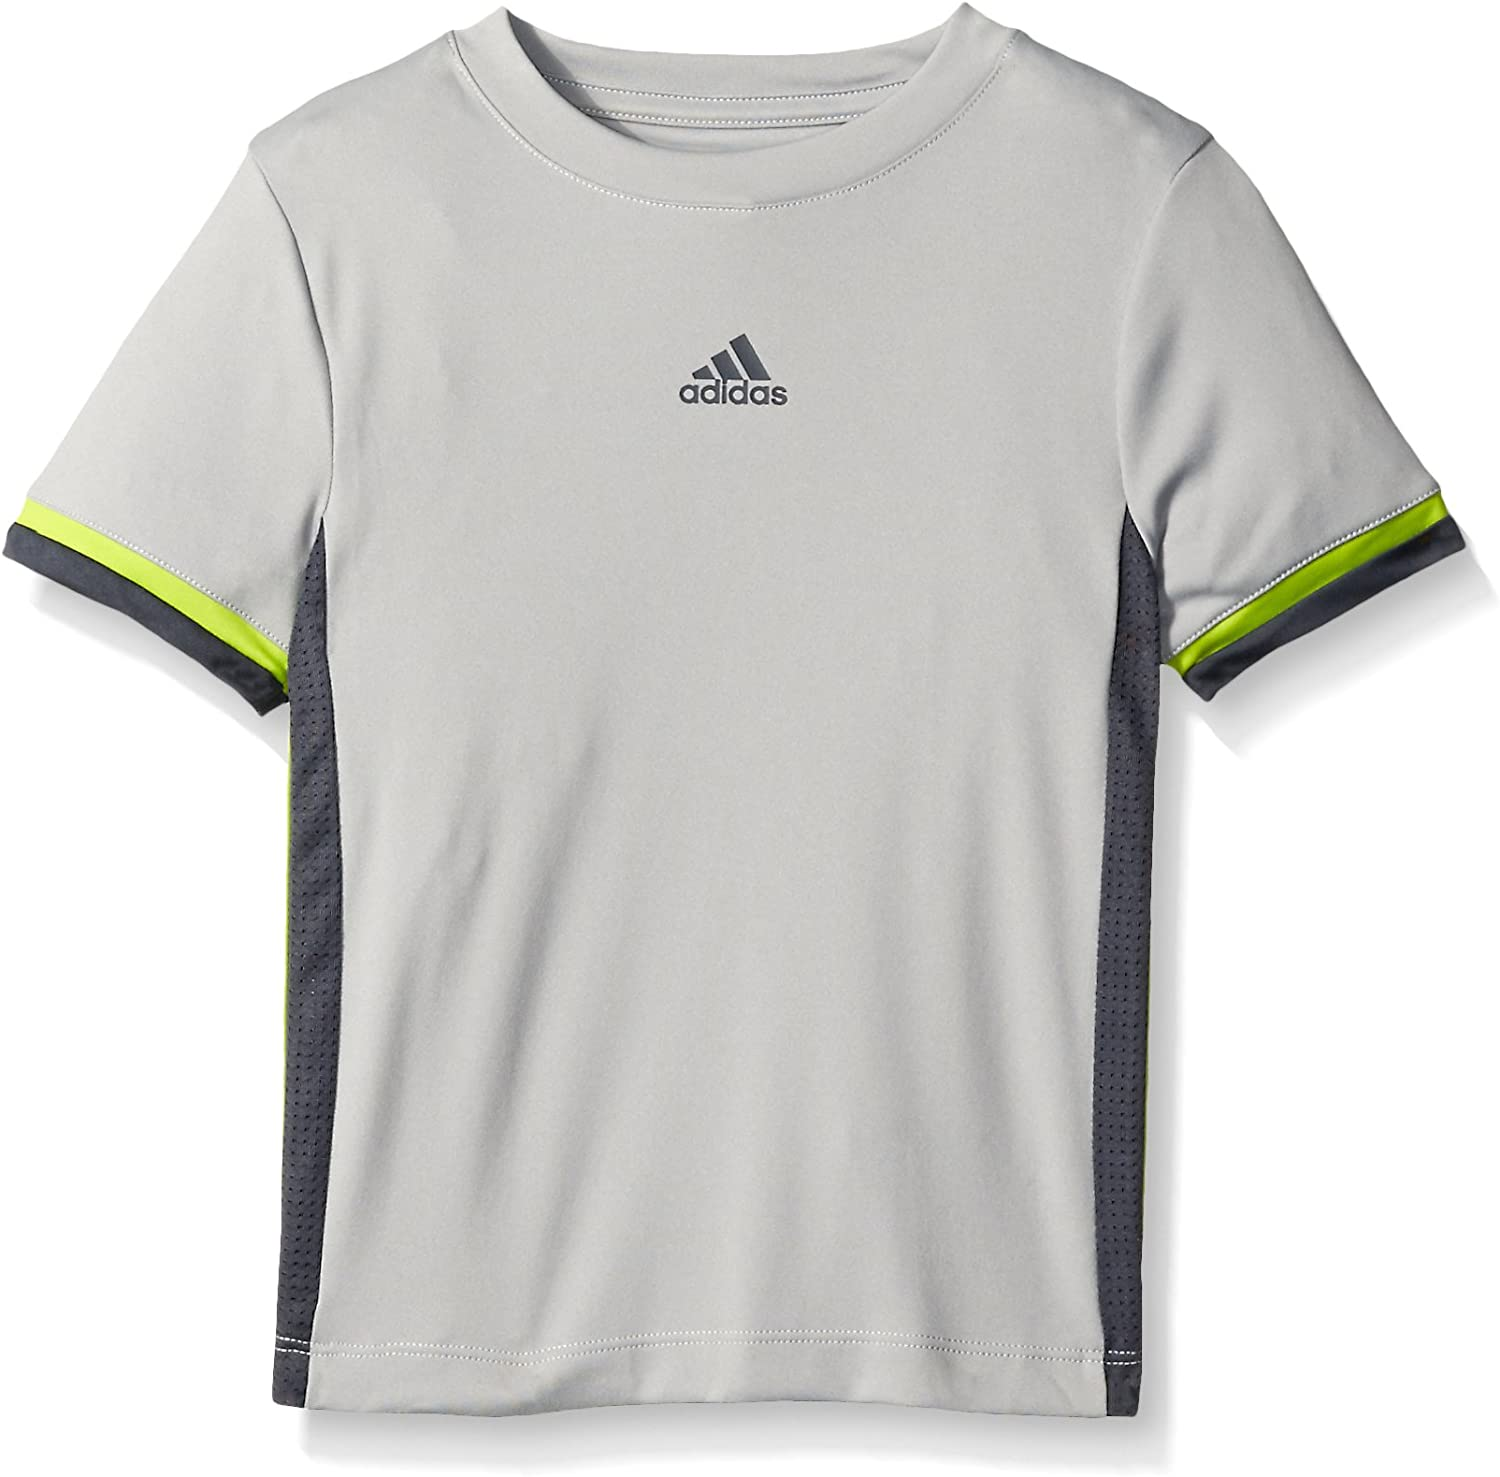 adidas Boys Performance Tee Shirt